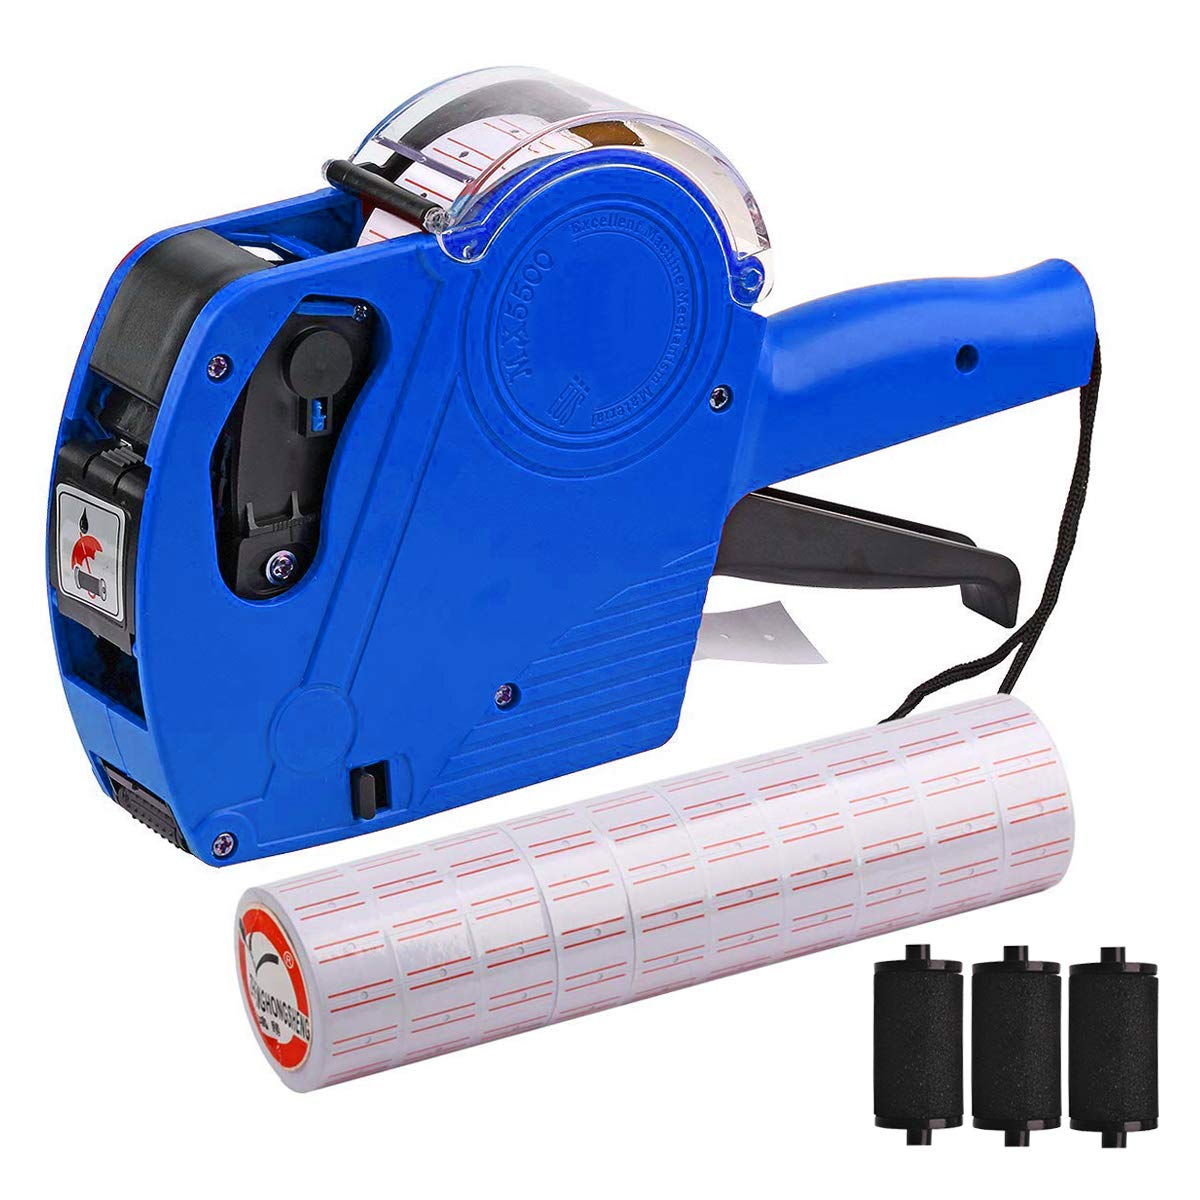 MX-5500 8 Digits Price tag Gun with 5000 Sticker Labels and 3 Ink Refill, Label Maker Pricing Gun Kit Numerical Tag Gun for Office, Retail Shop, Grocery Store, Organization Marking (Blue)